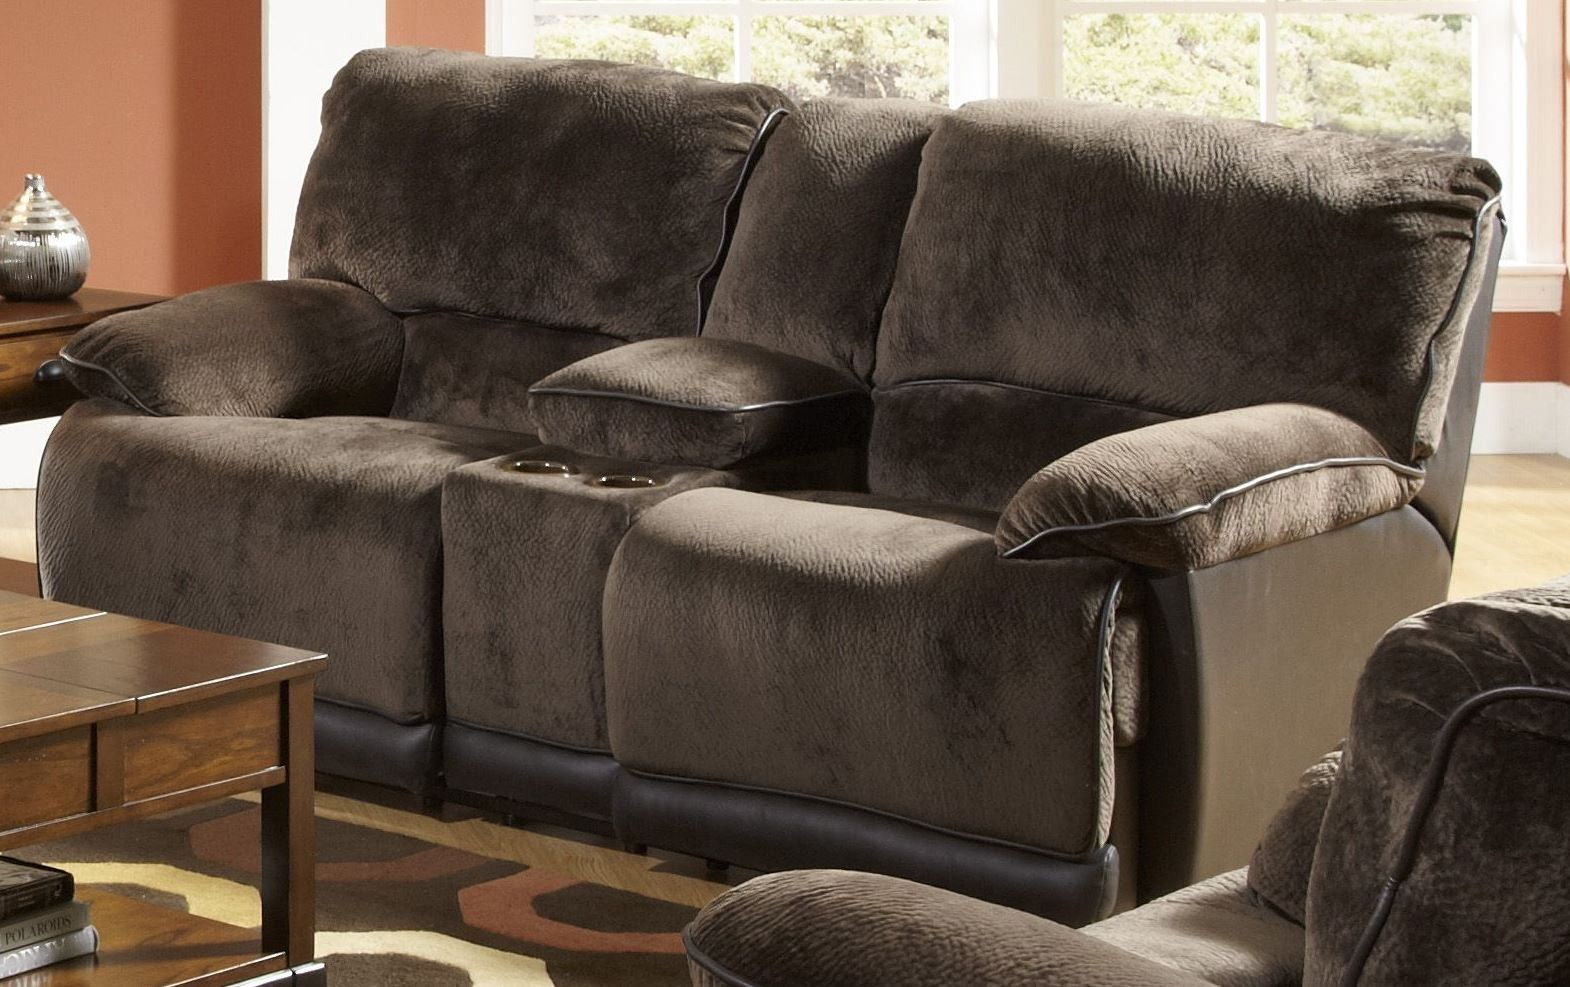 Escalade Chocolate Power Reclining Living Room Set From Catnapper 6171120000